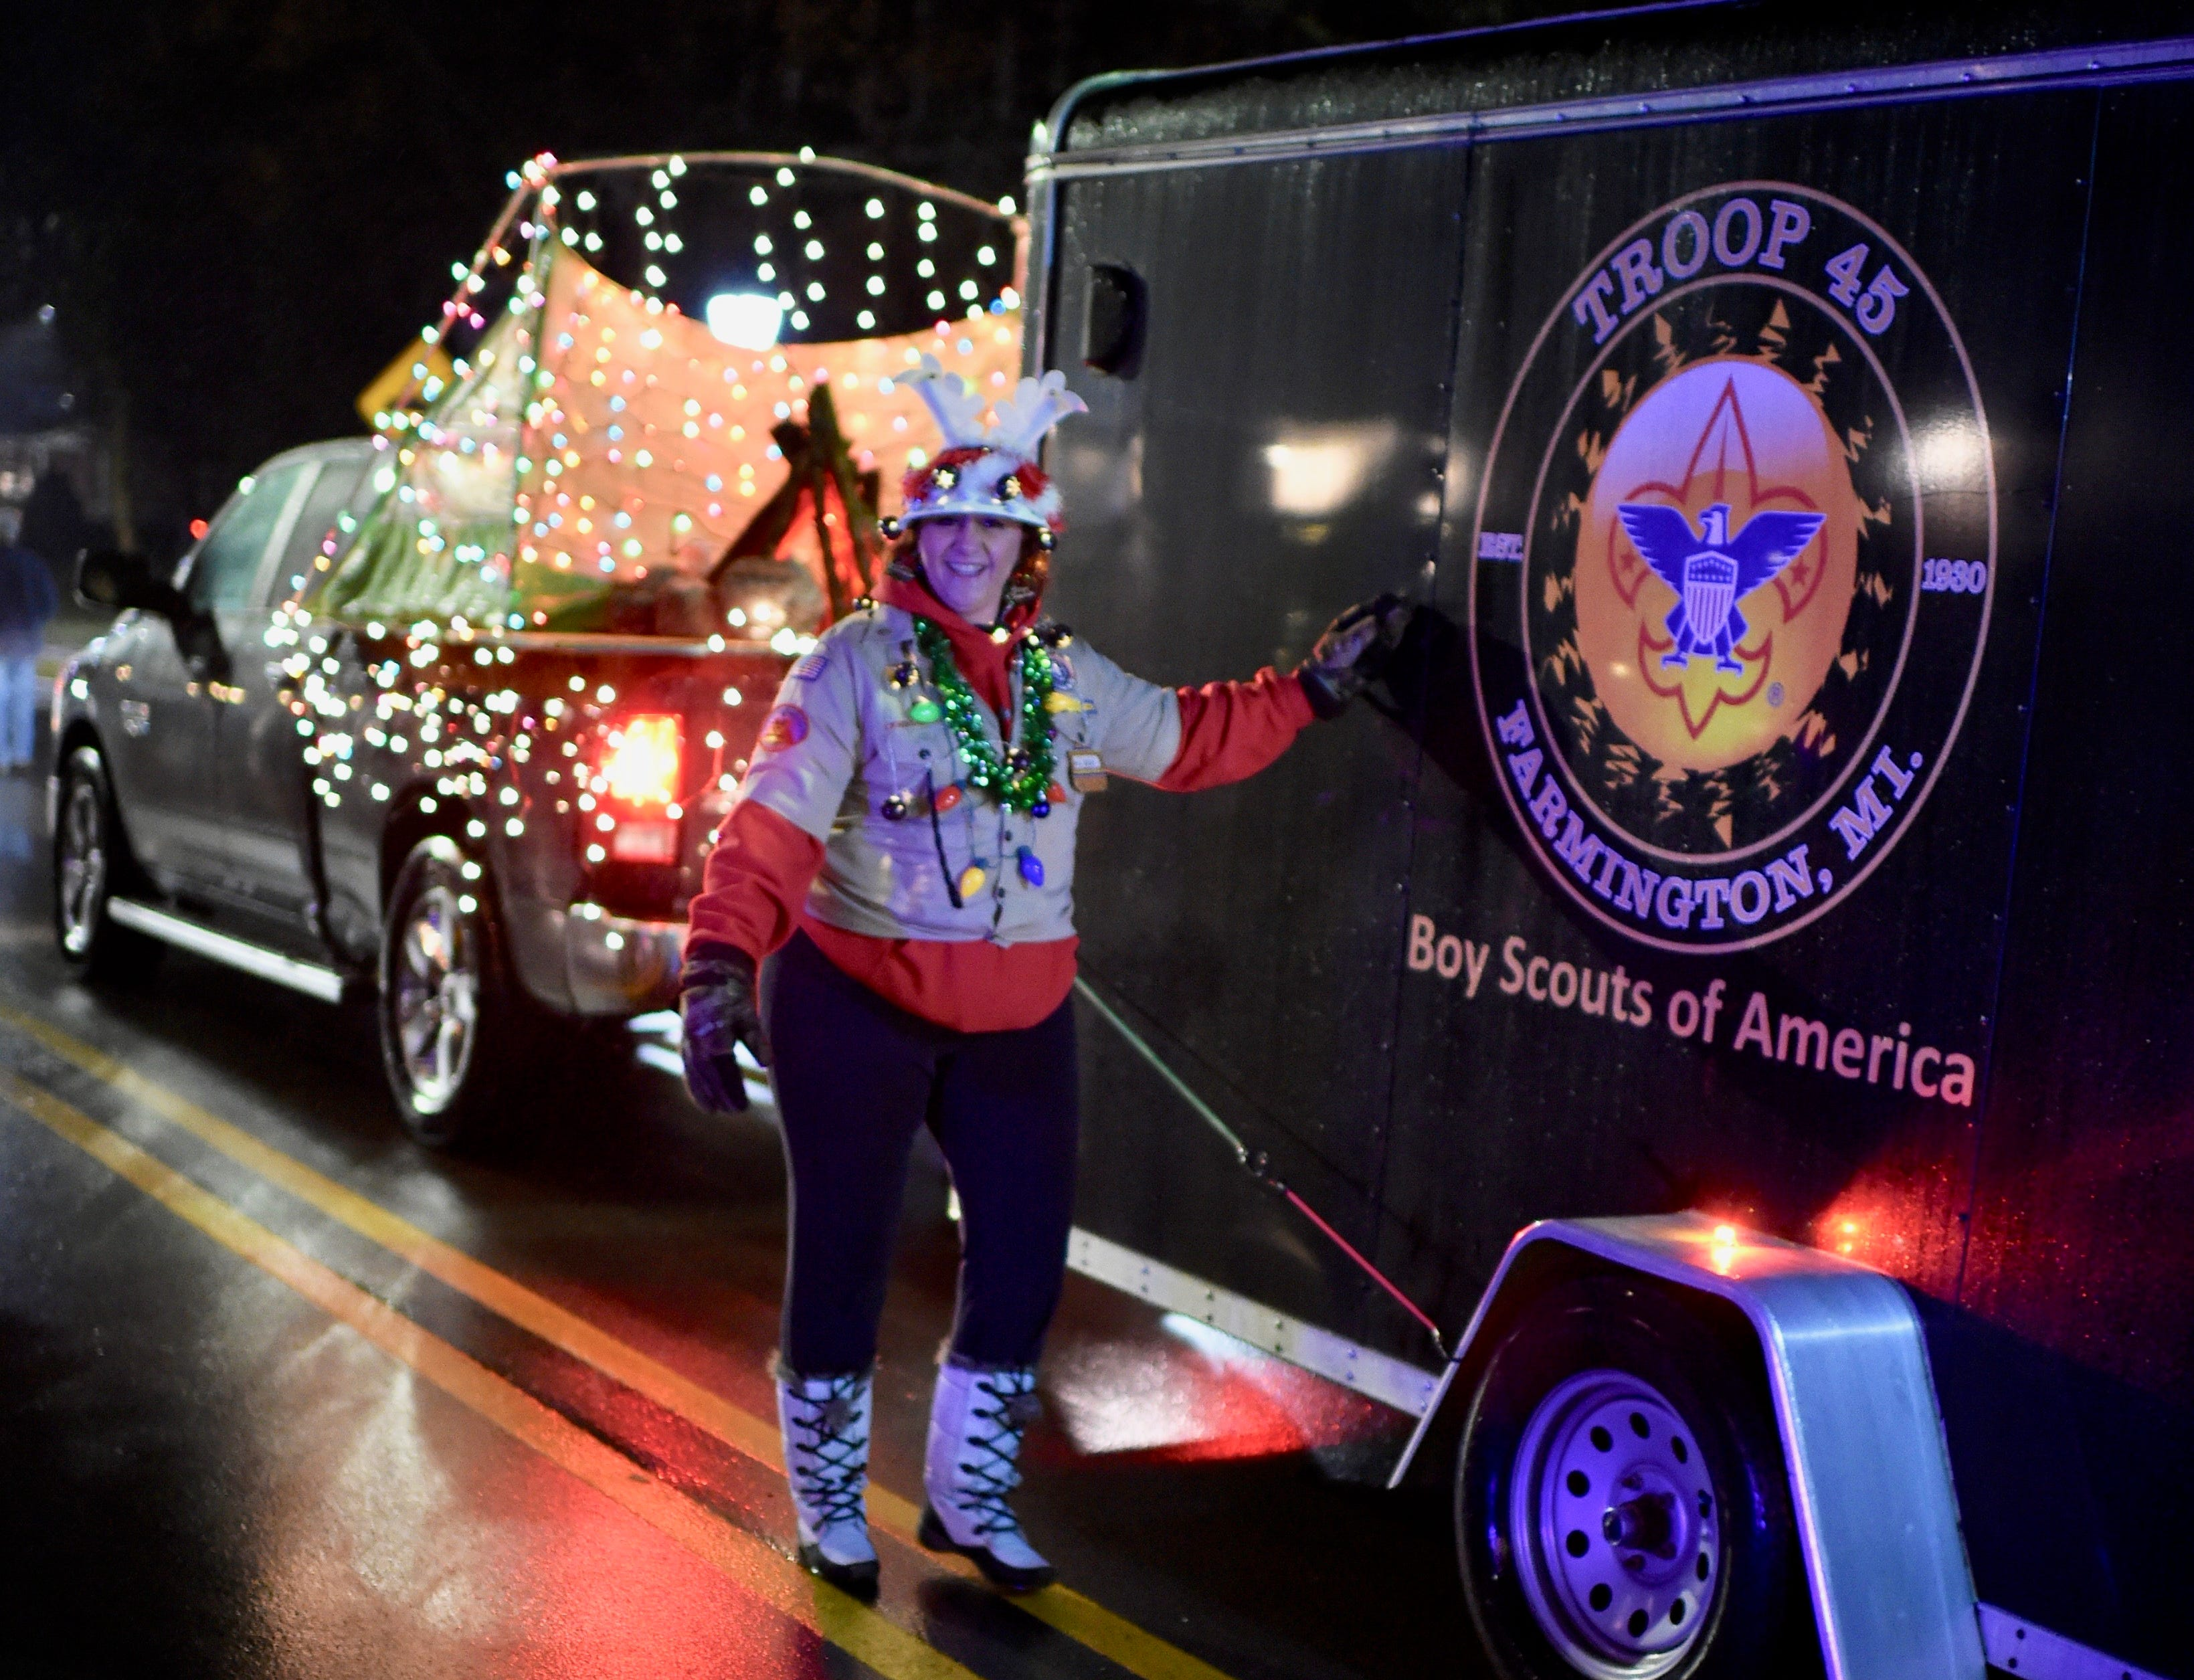 Boy Scout Troop #45 came prepared during the annual parade.